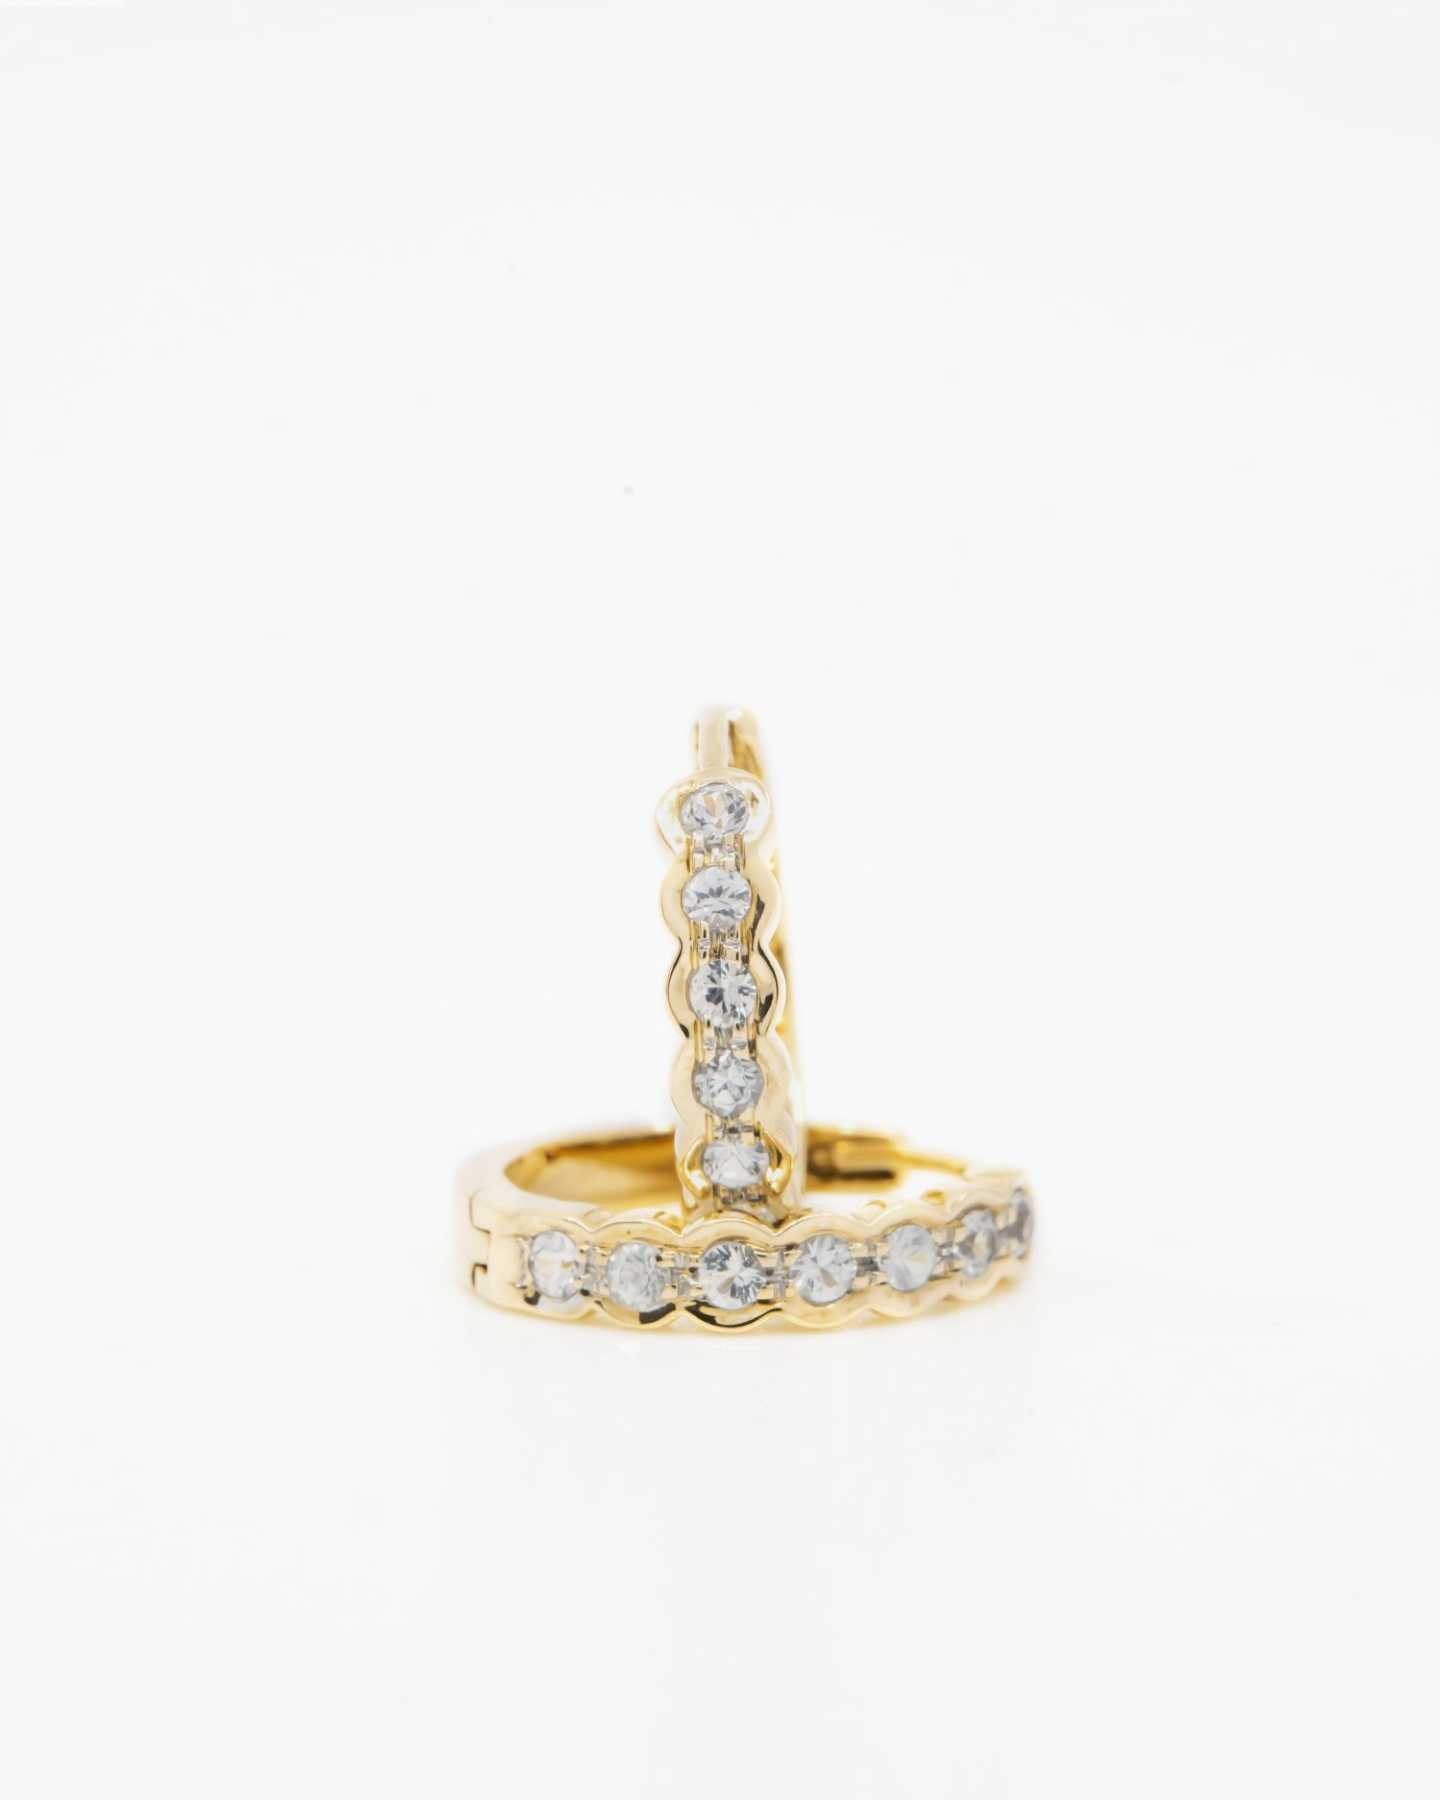 White Sapphire Huggie Earrings - Gold Vermeil - 1